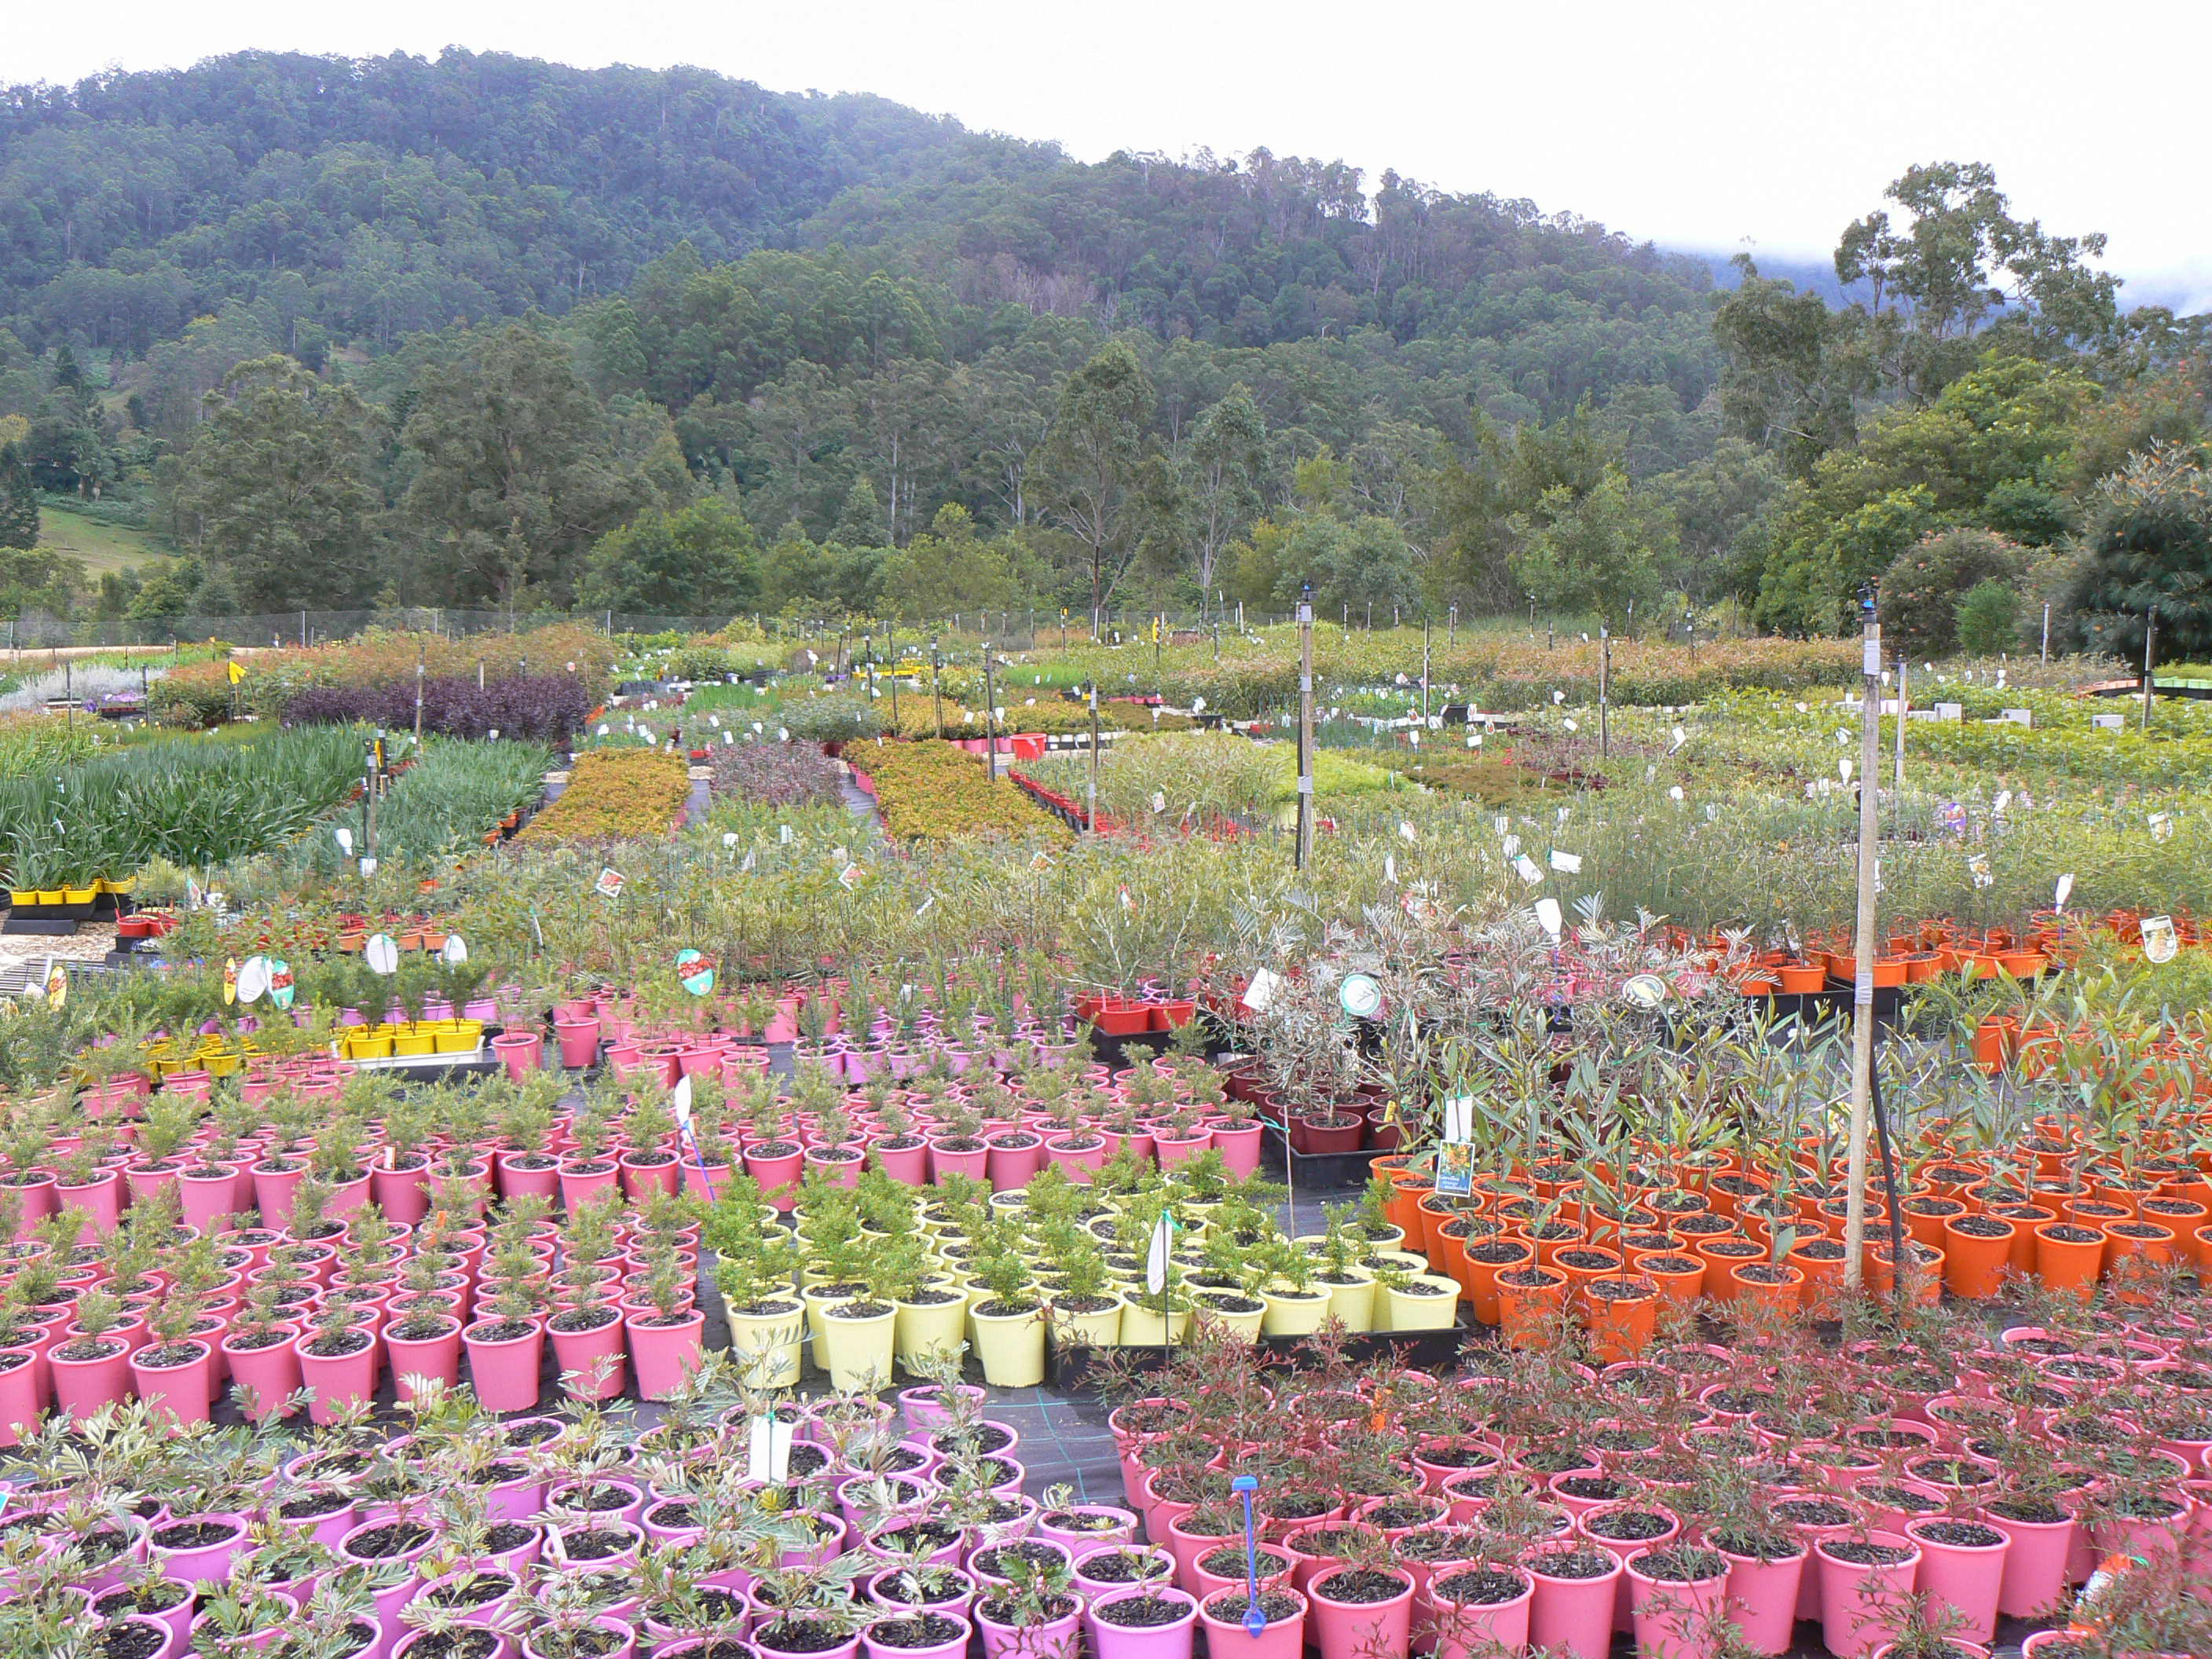 Gondwana wholesale native plant nursery australia for Plant nursery